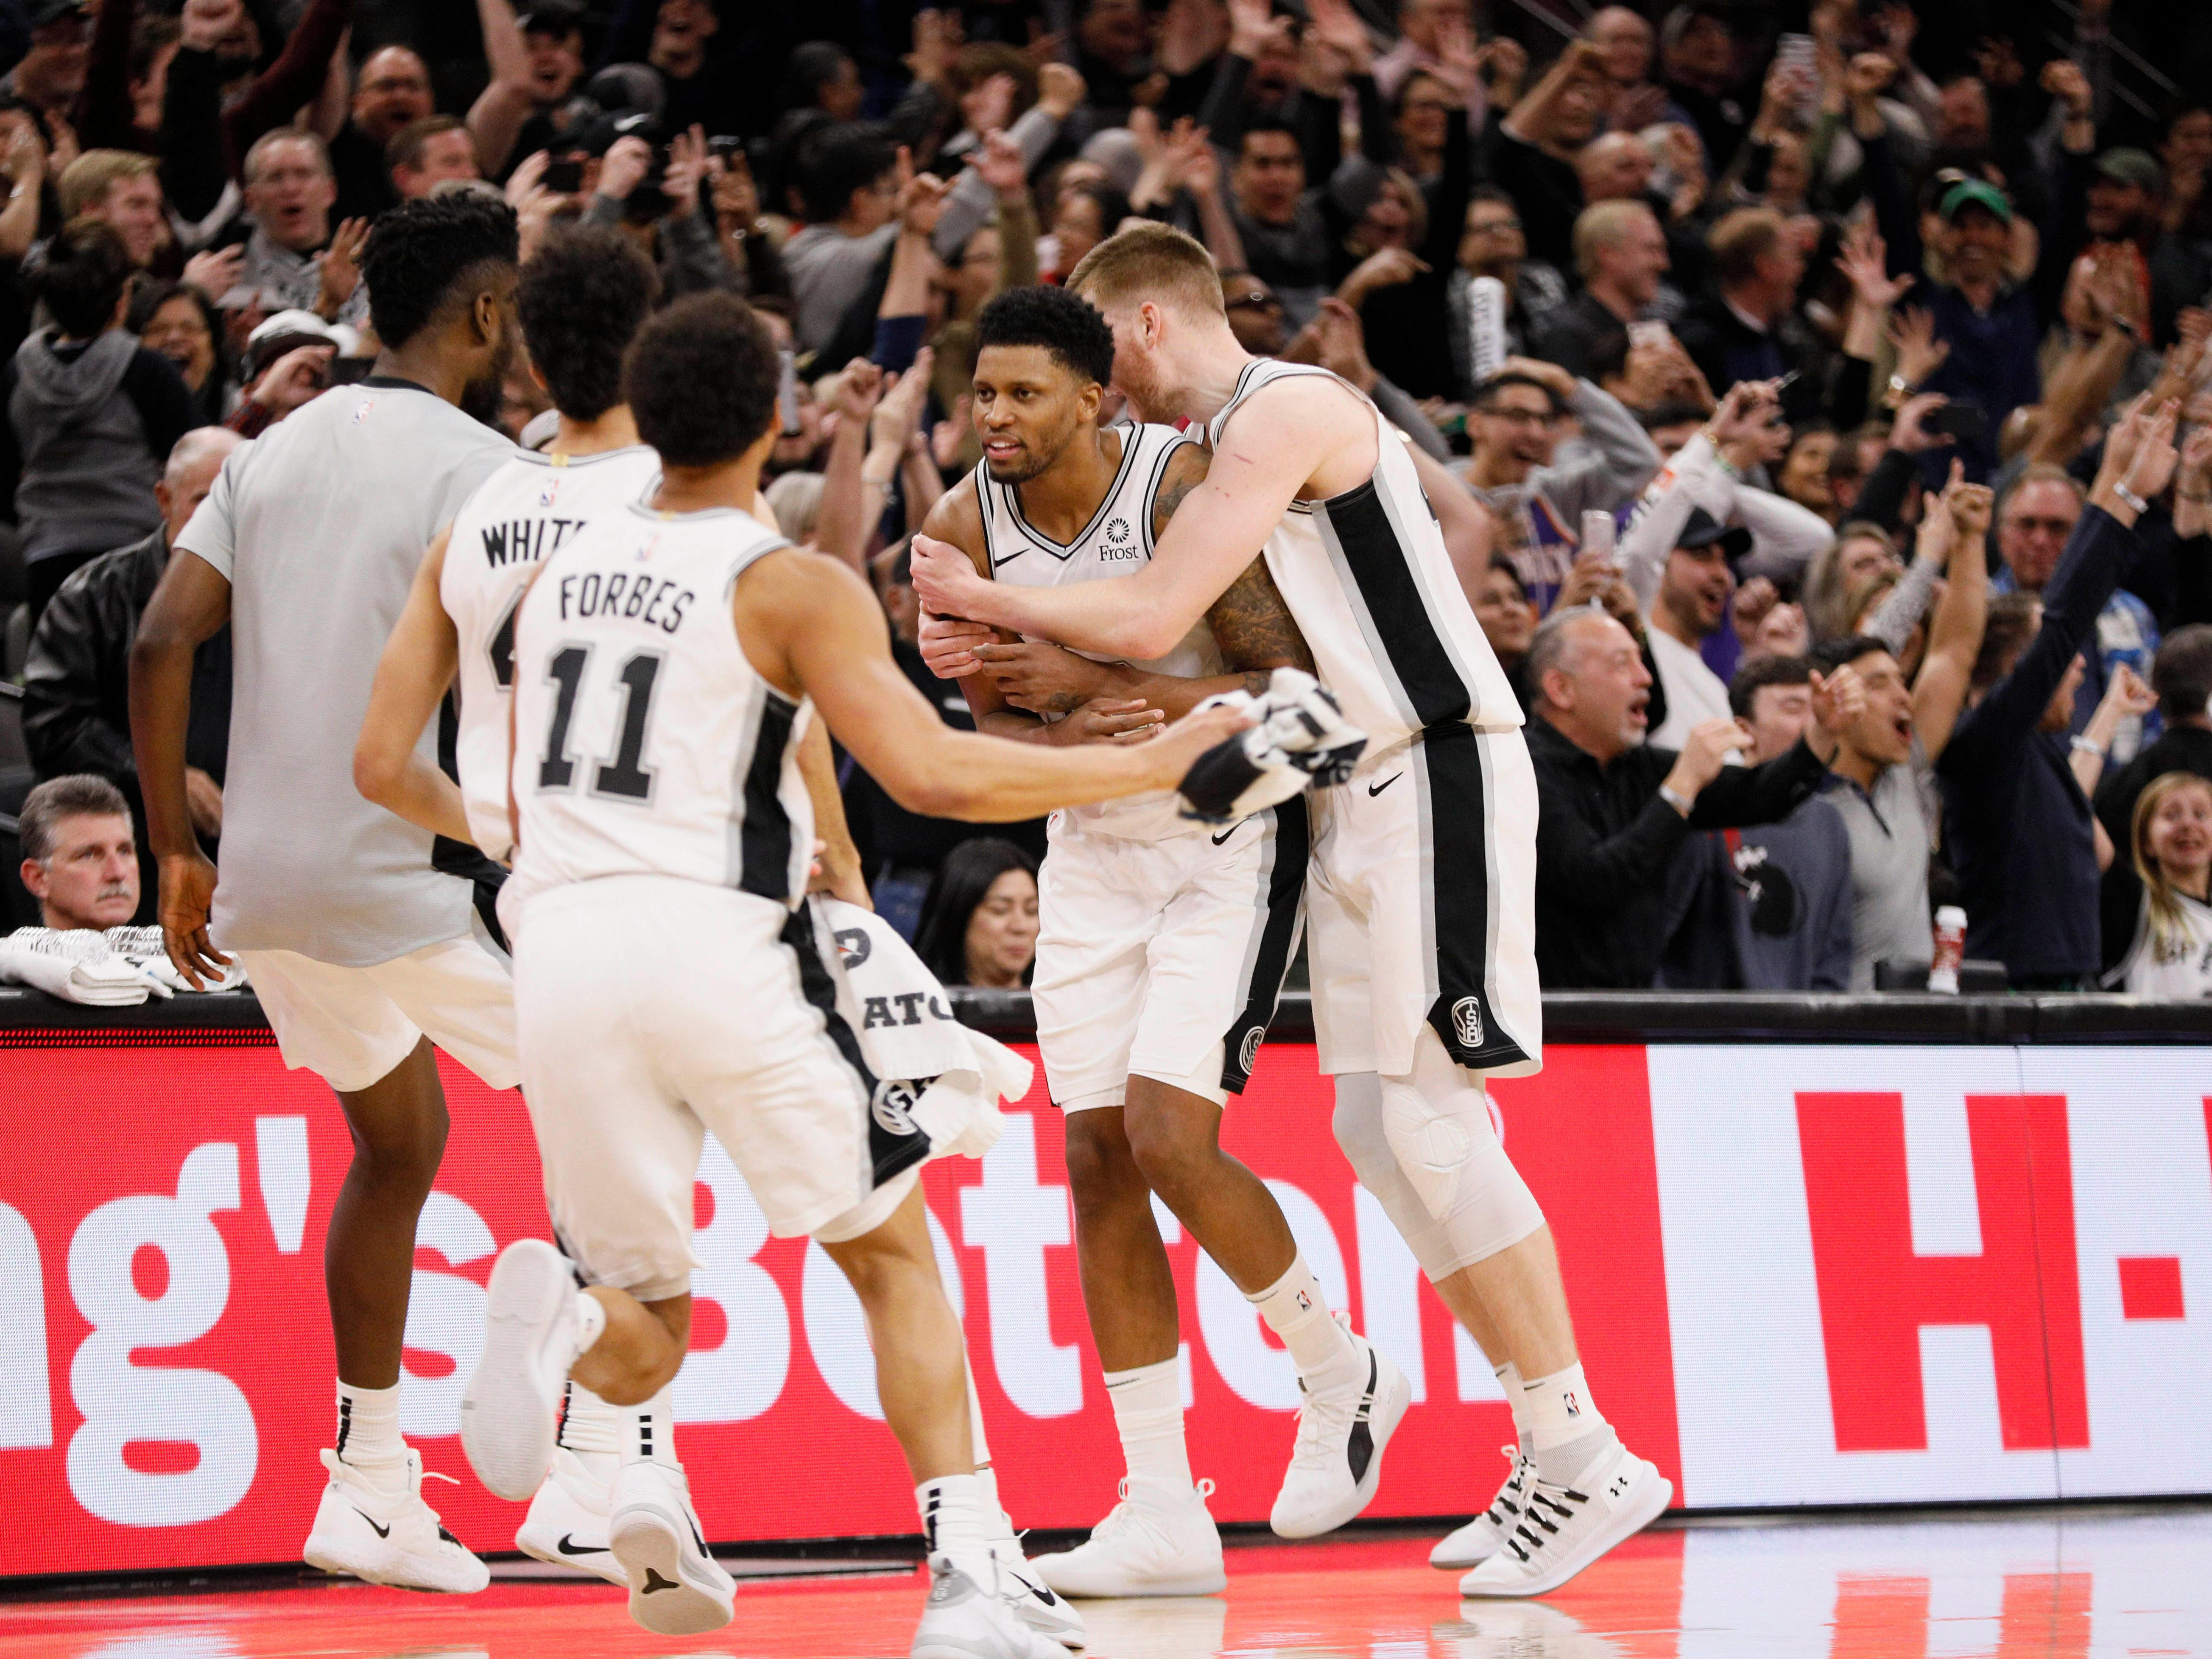 Jan 29, 2019: San Antonio Spurs small forward Rudy Gay (facing camera) celebrates with teammates after scoring at the buzzer during the second half against the Phoenix Suns at AT&T Center.